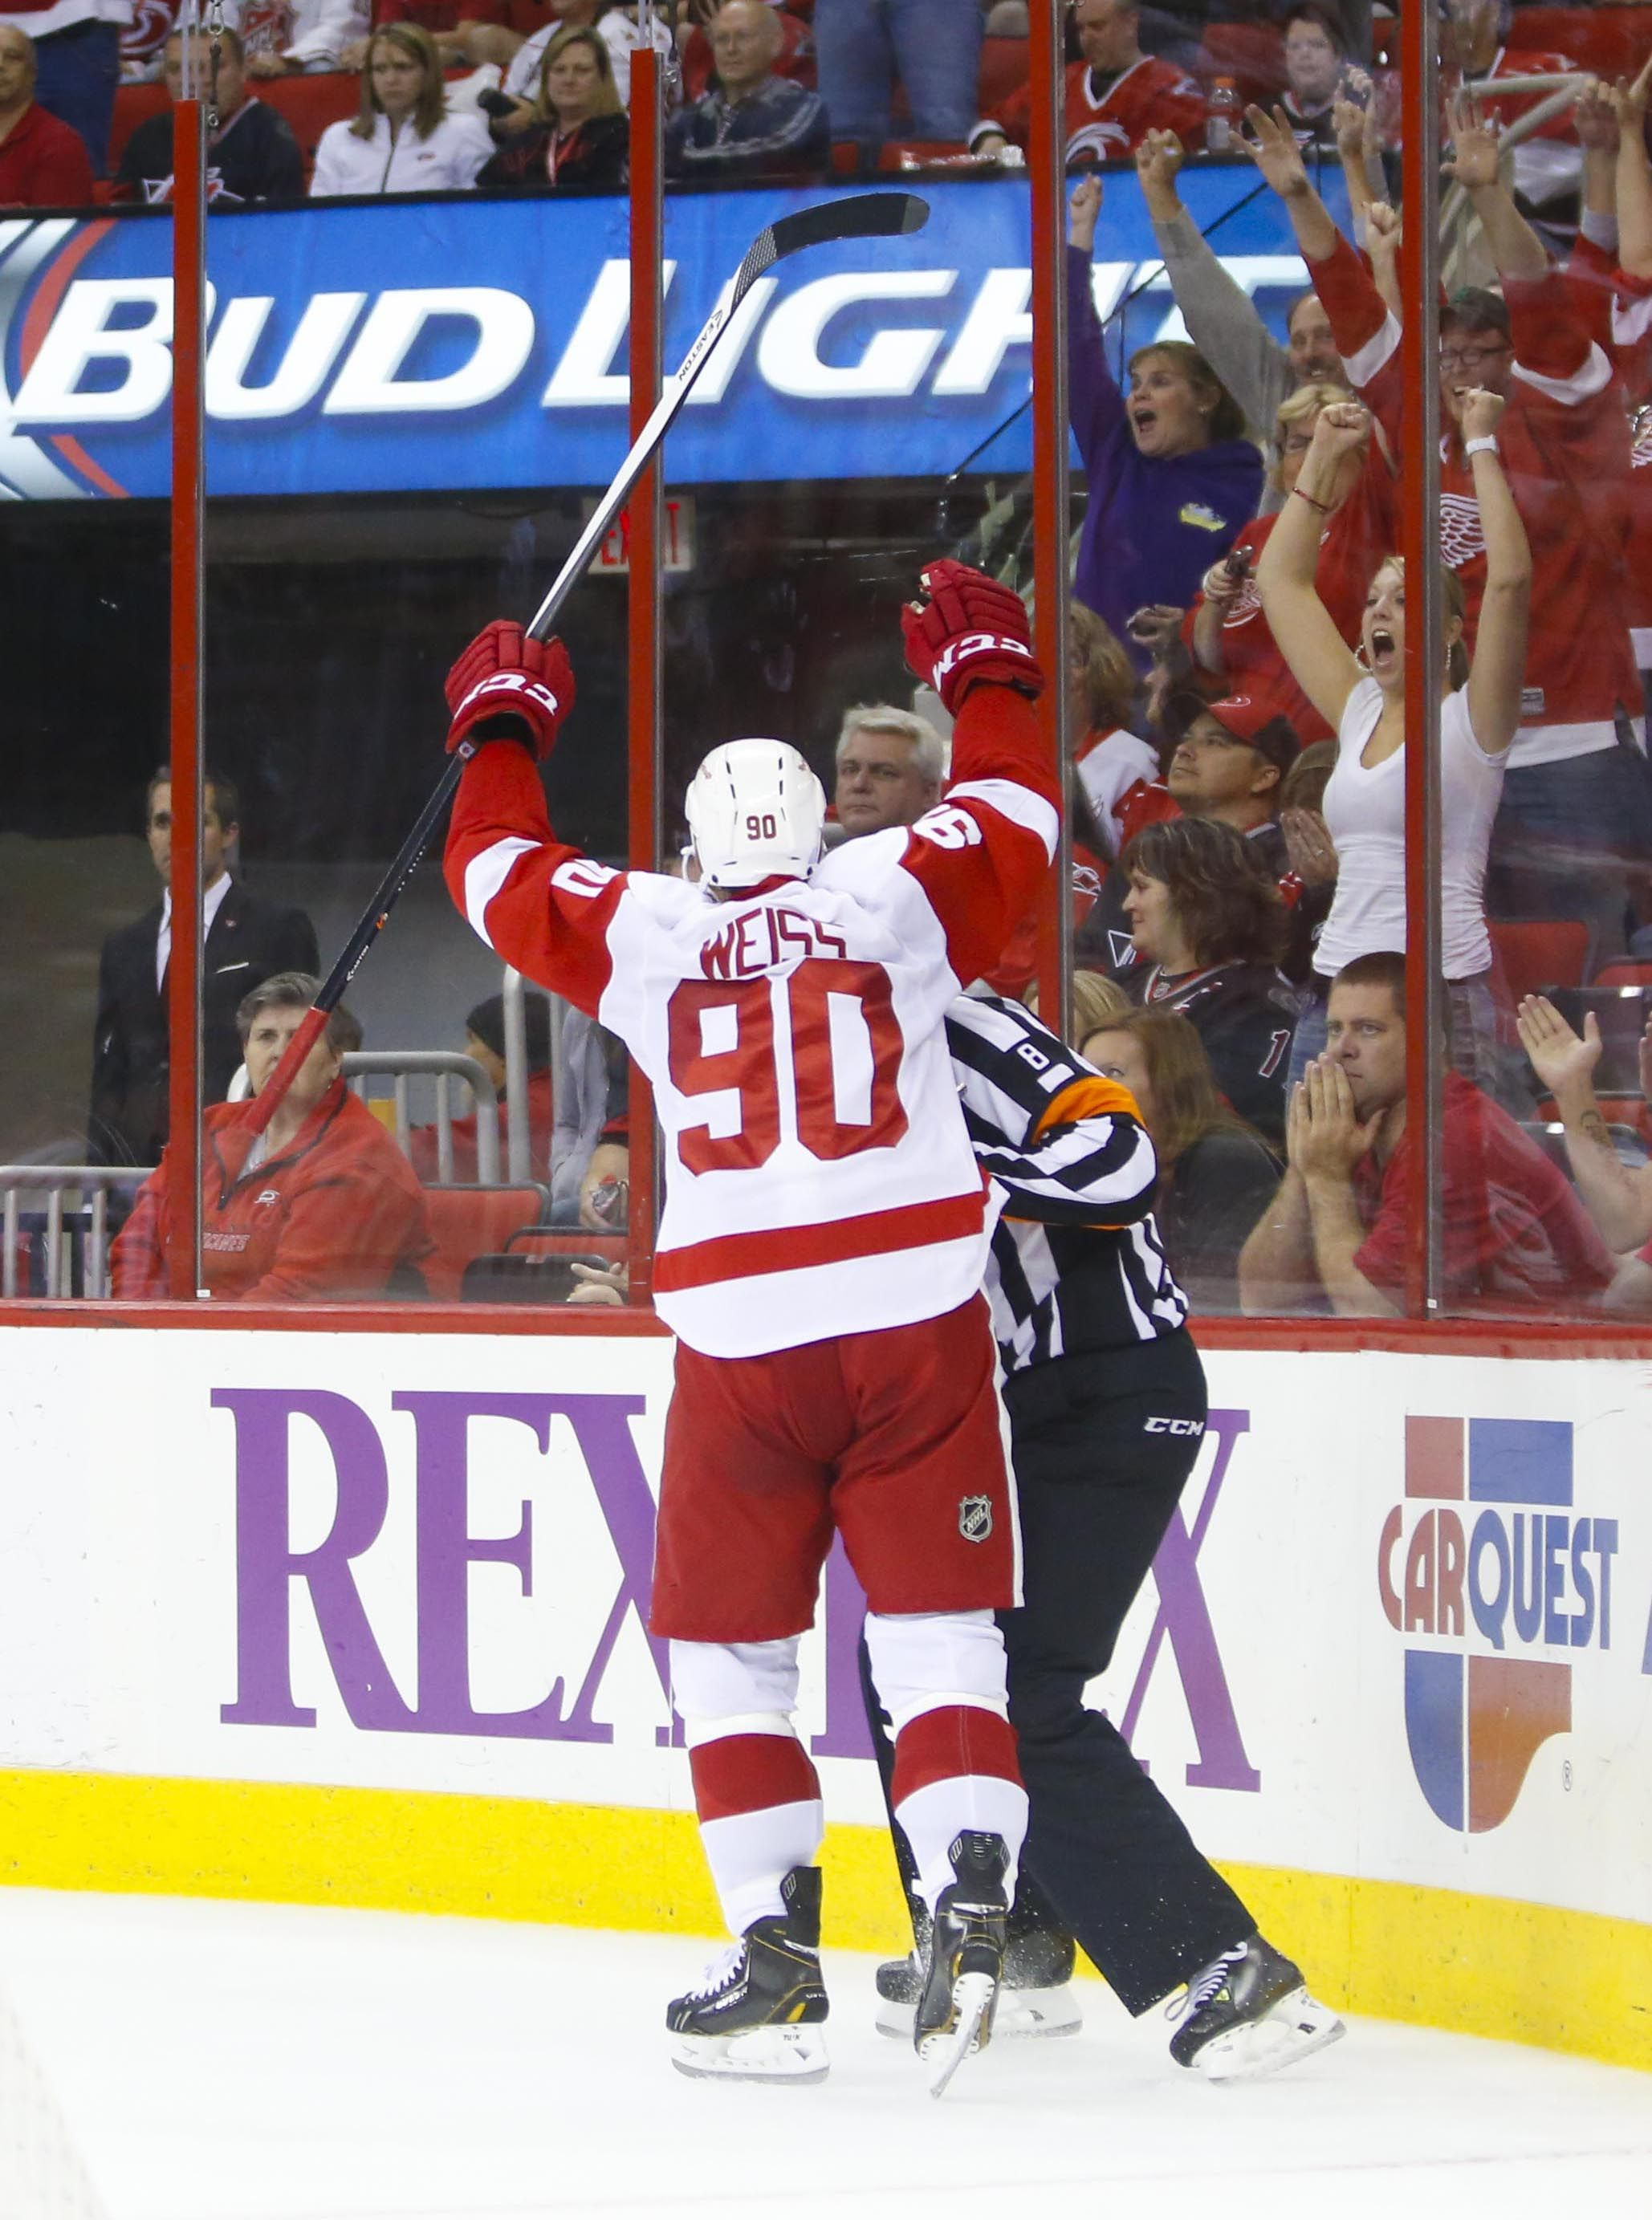 CrowdCam Hot Shot: Detroit Red Wings forward Stephen Weiss celebrates his overtime goal against the Carolina Hurricanes at PNC Center. The Red Wings won 3-2 in overtime. Photo by James Guillory